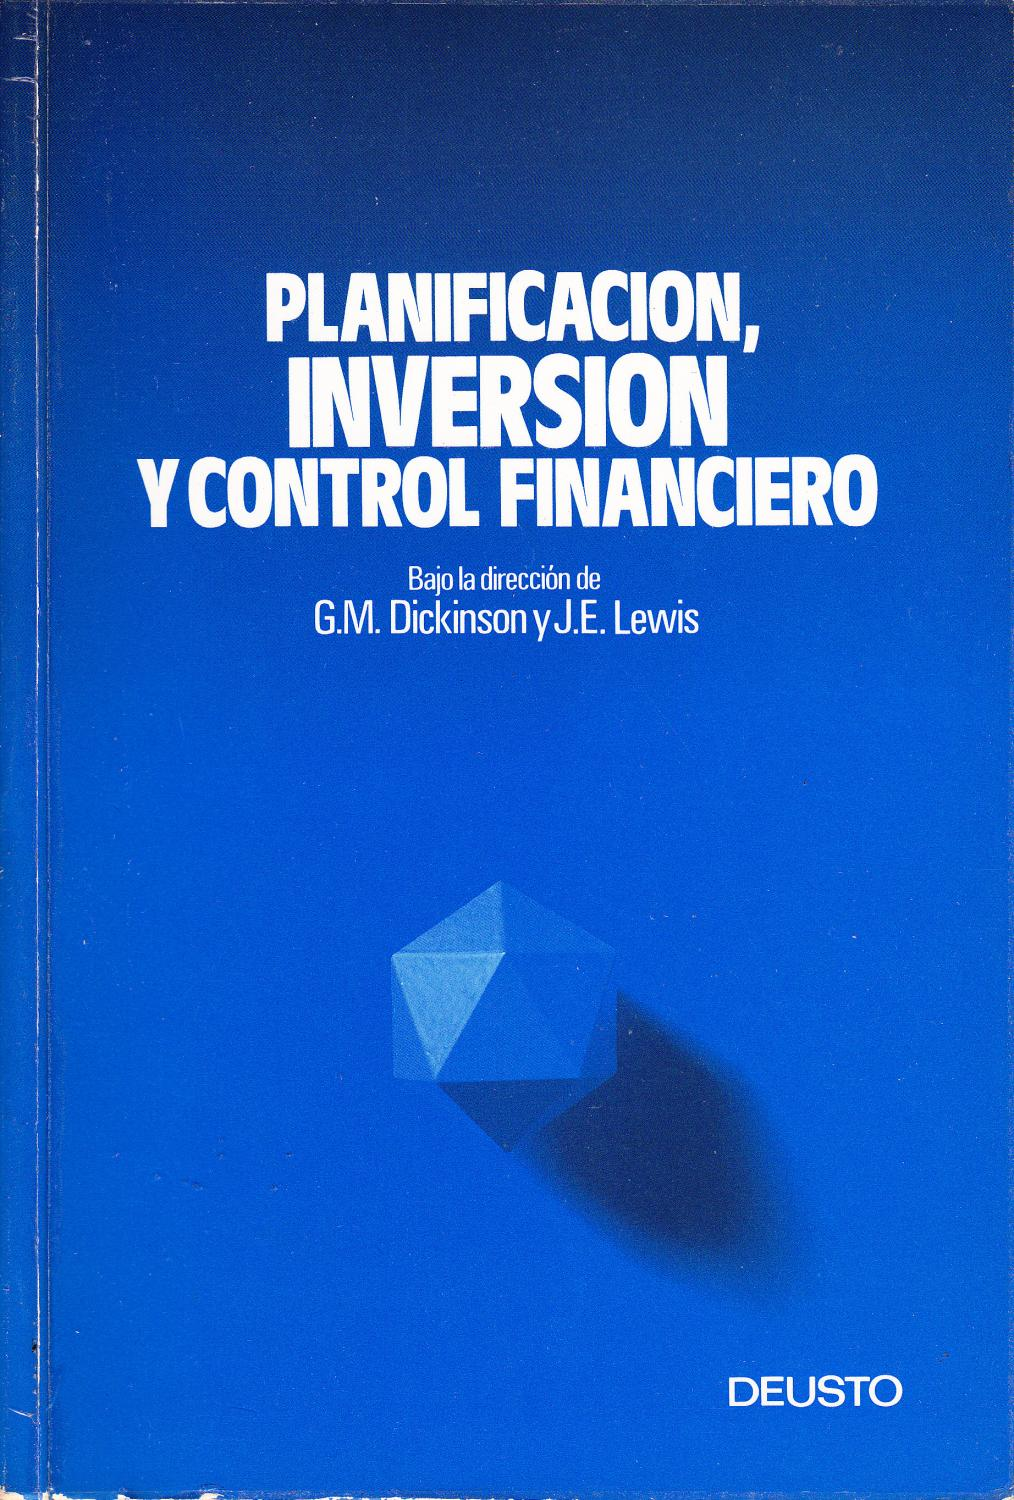 PLANIFICACION, INVERSION Y CONTROL FINANCIERO: G. M. Dickinson y J. E. Lewis